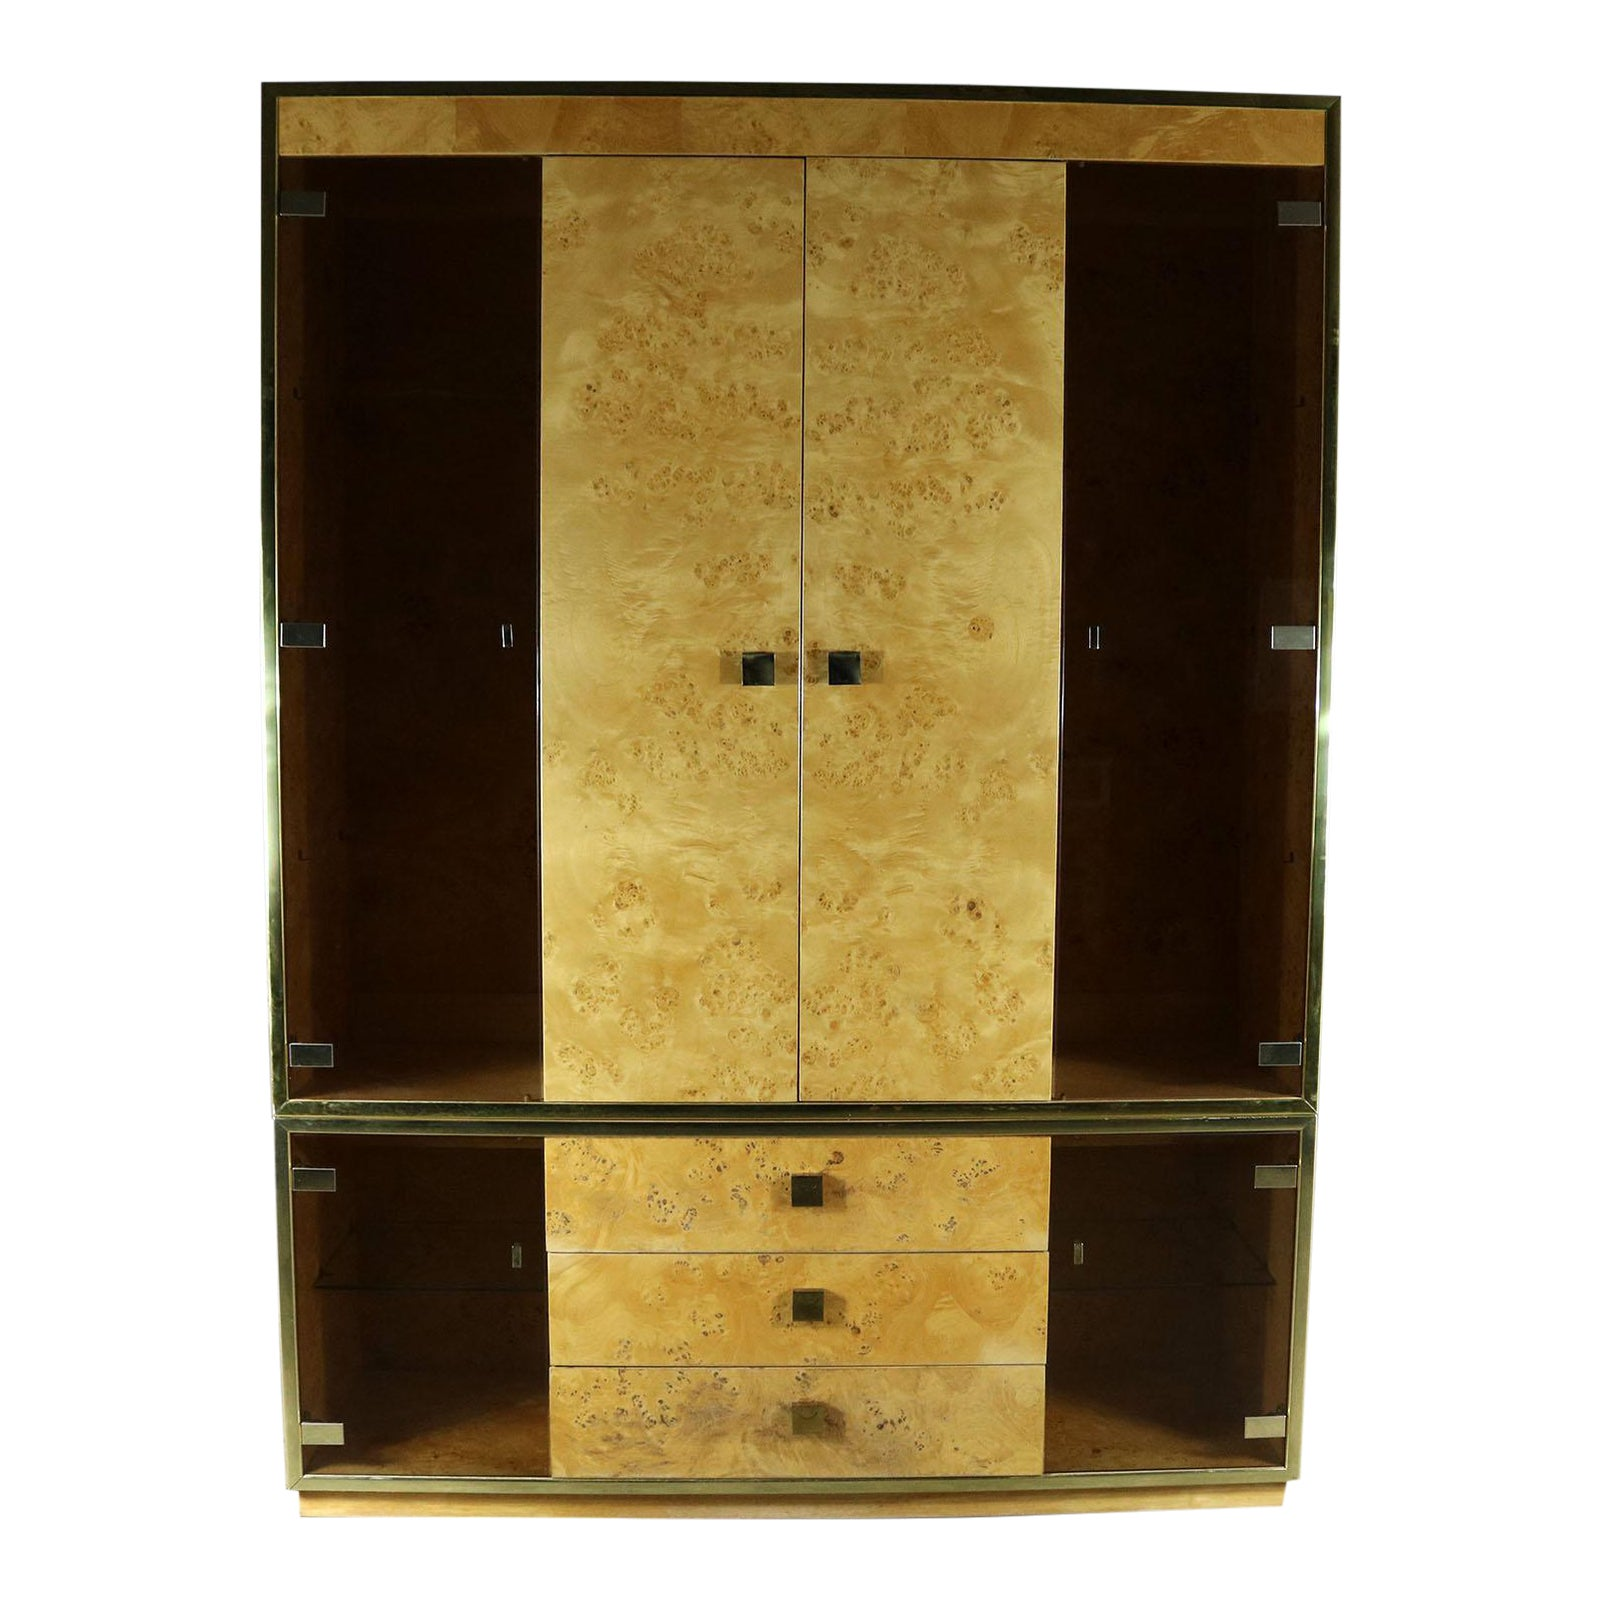 Founders Furniture Burled Wood and Smoke Glass Wall Unit Display ...